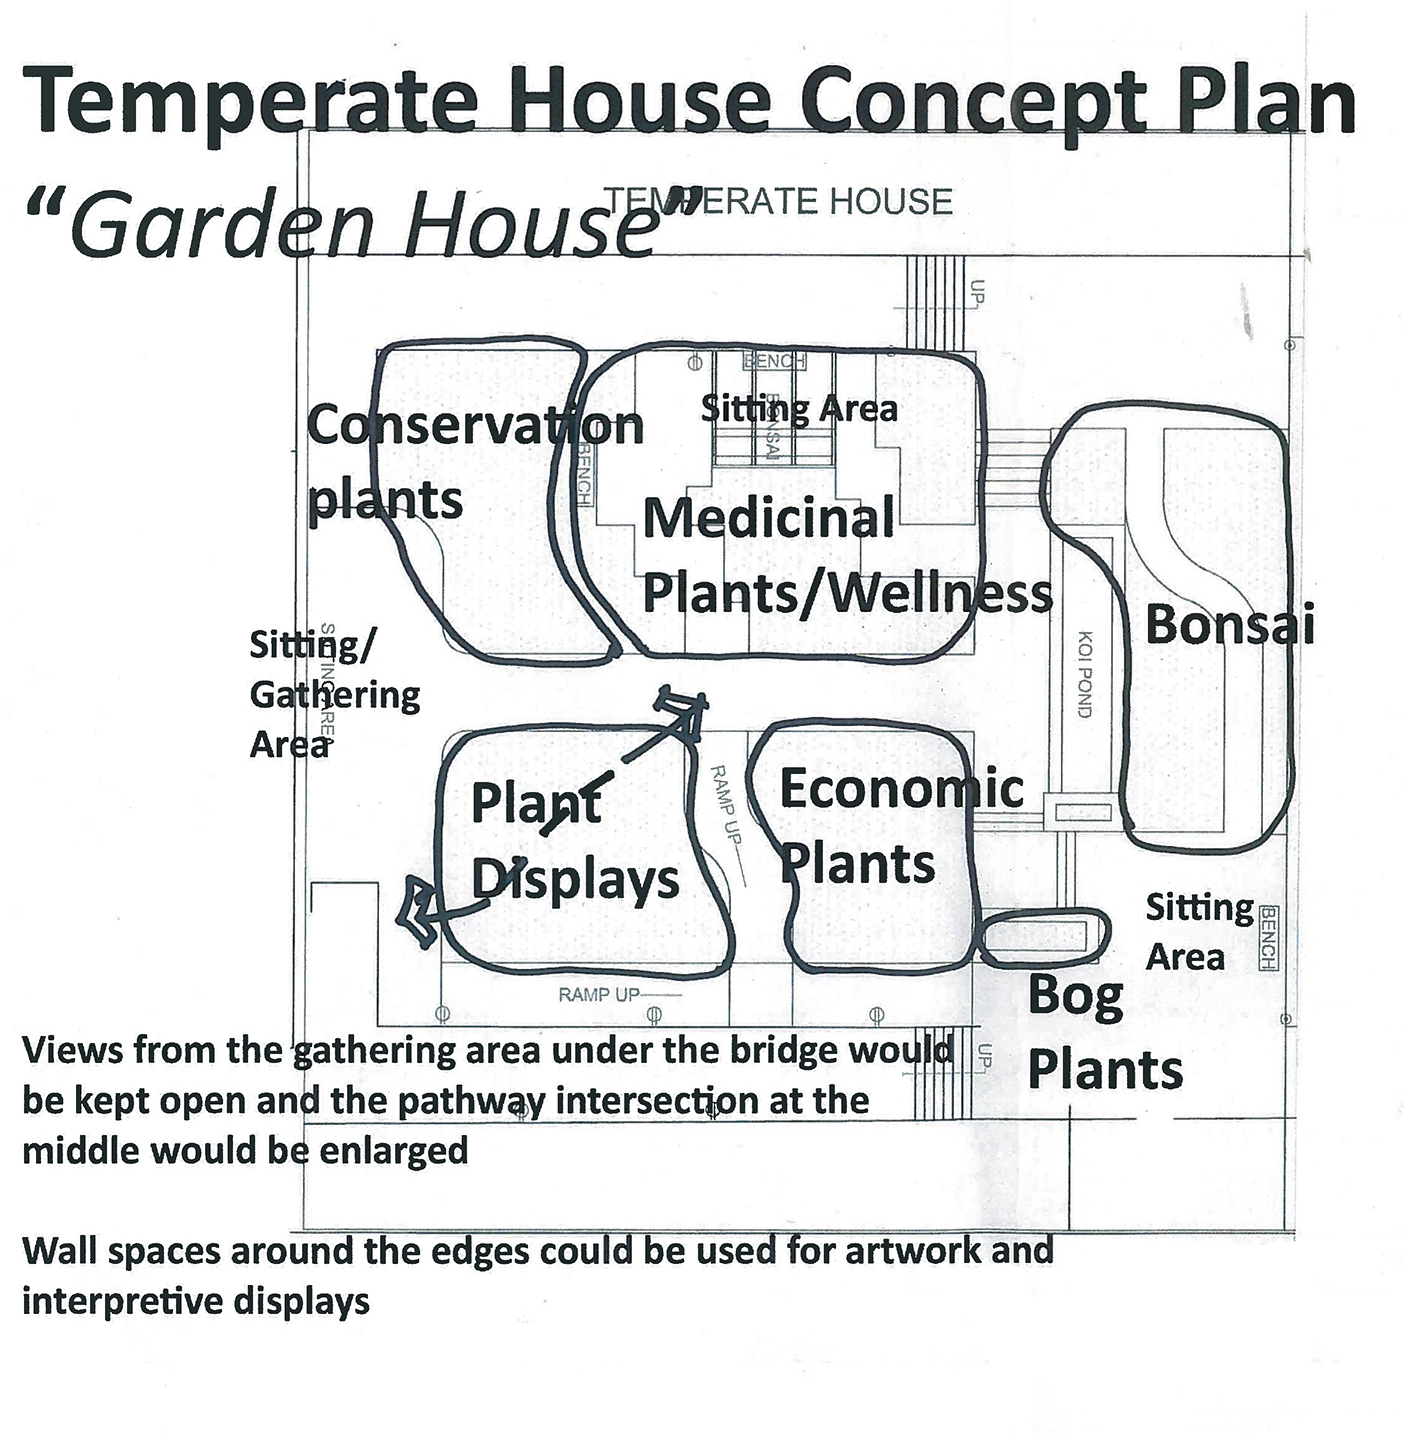 Temperate house concept plan